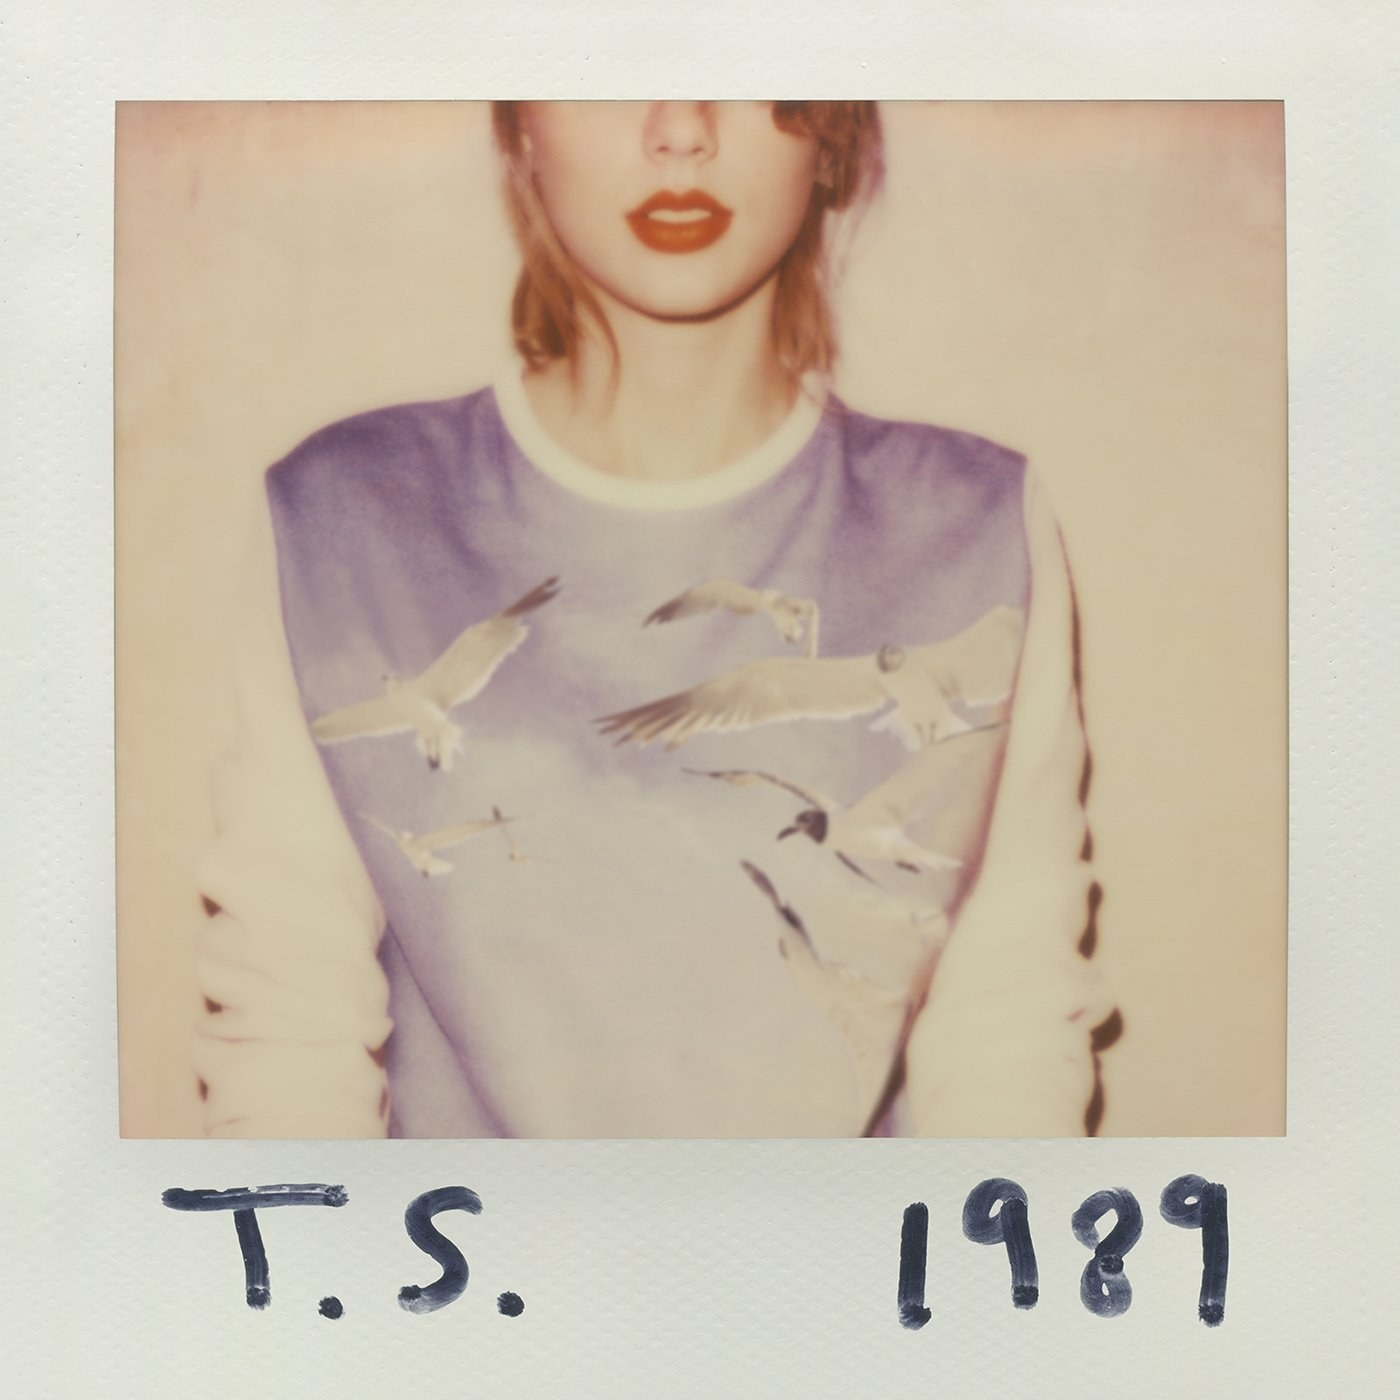 A polaroid of Taylor Swift in a bird sweater.